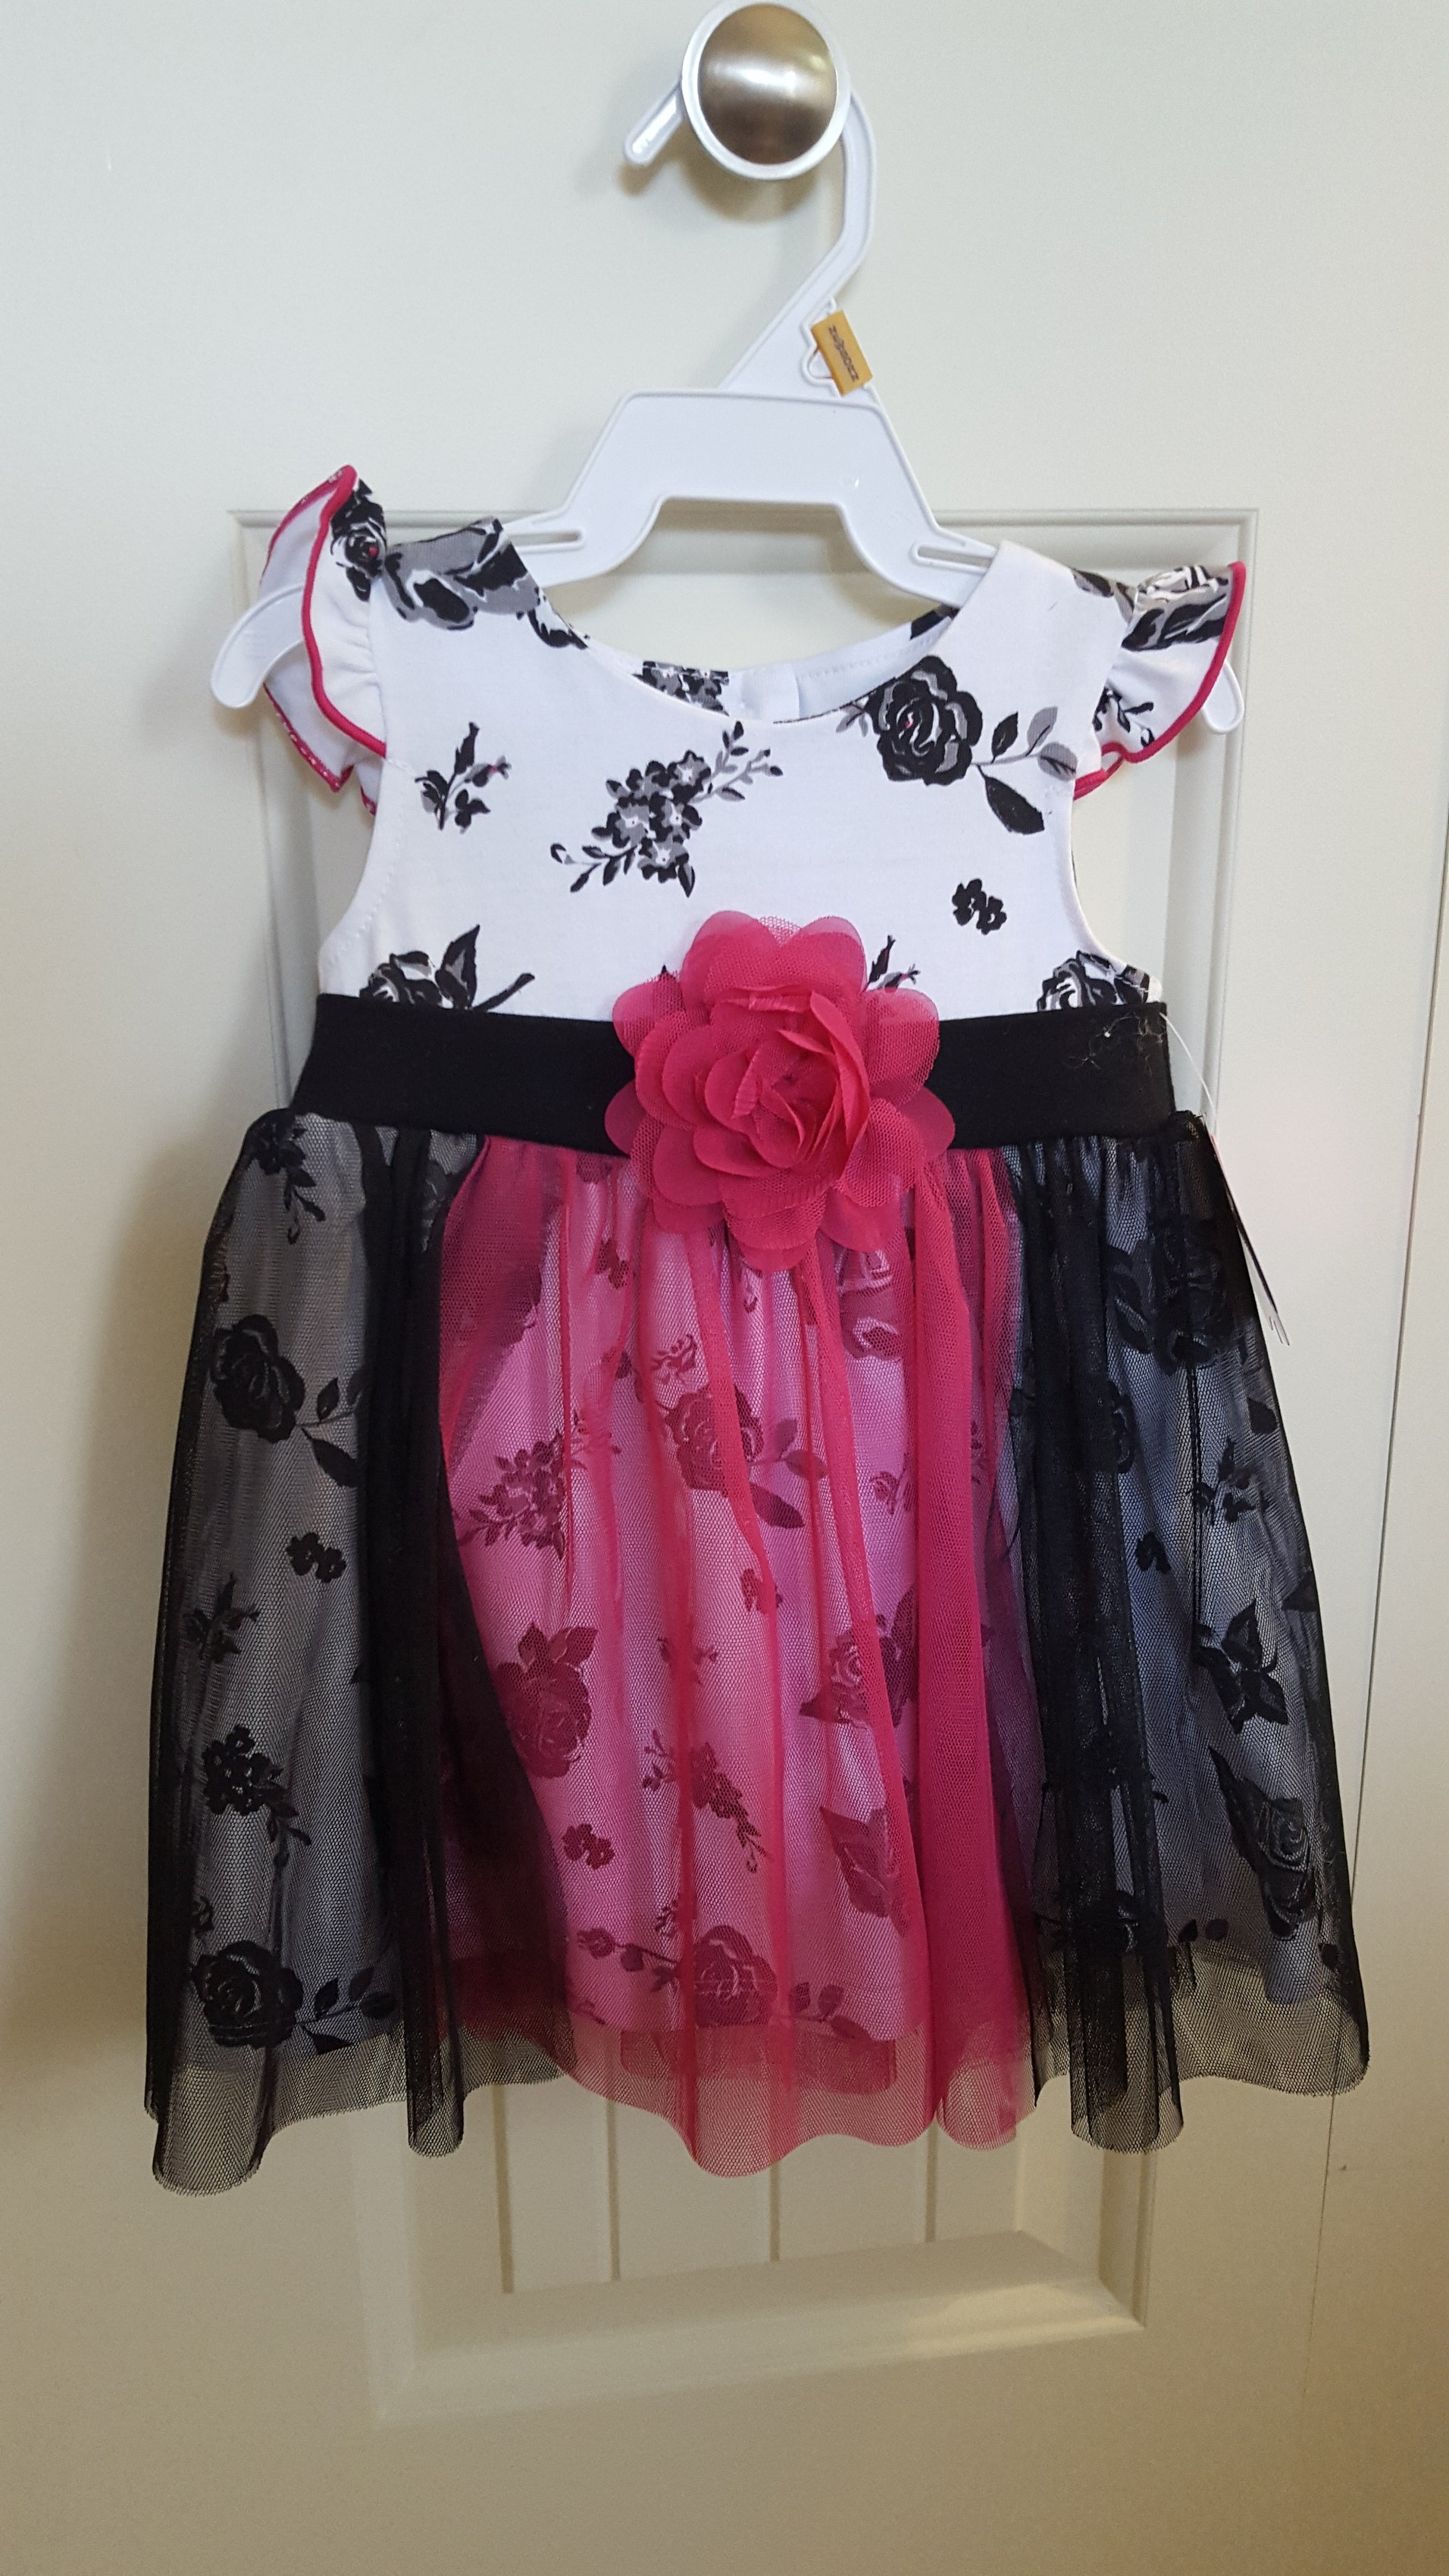 Adorable baby girl clothes for sale - For Sale/Wanted ...